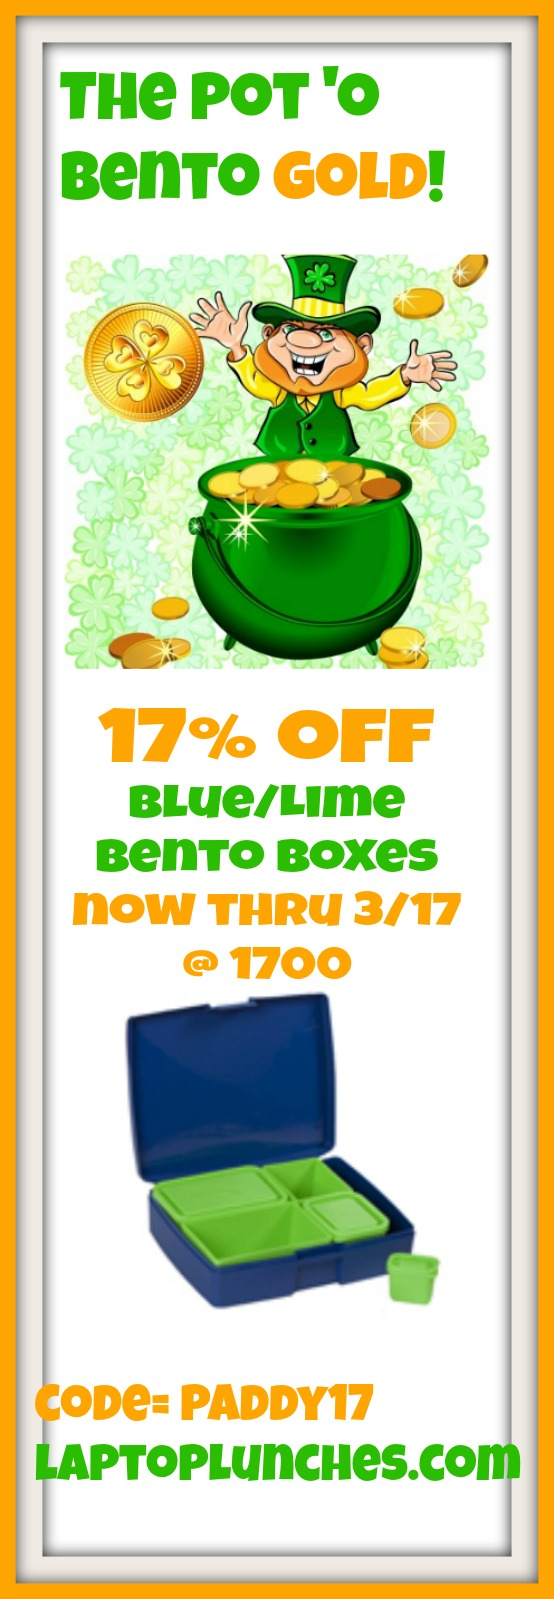 17% Off Now thru St. Paddy's Day!